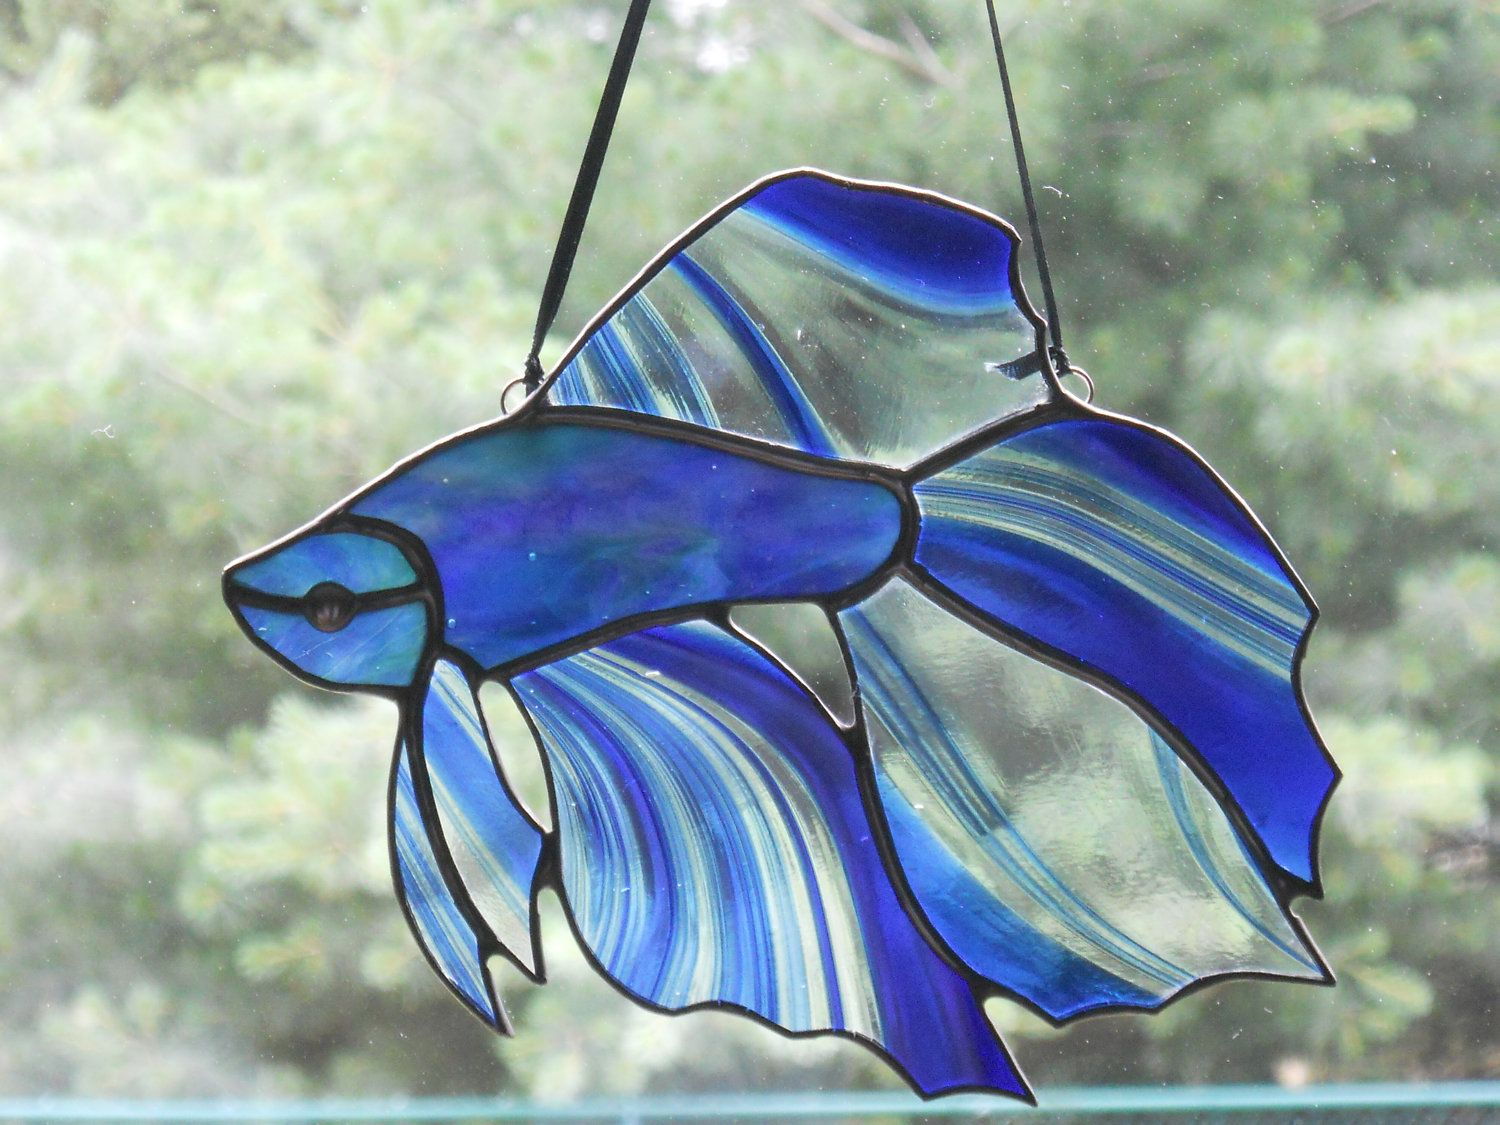 Stunning betta fish stained glass suncatcher by for Stained glass fish patterns